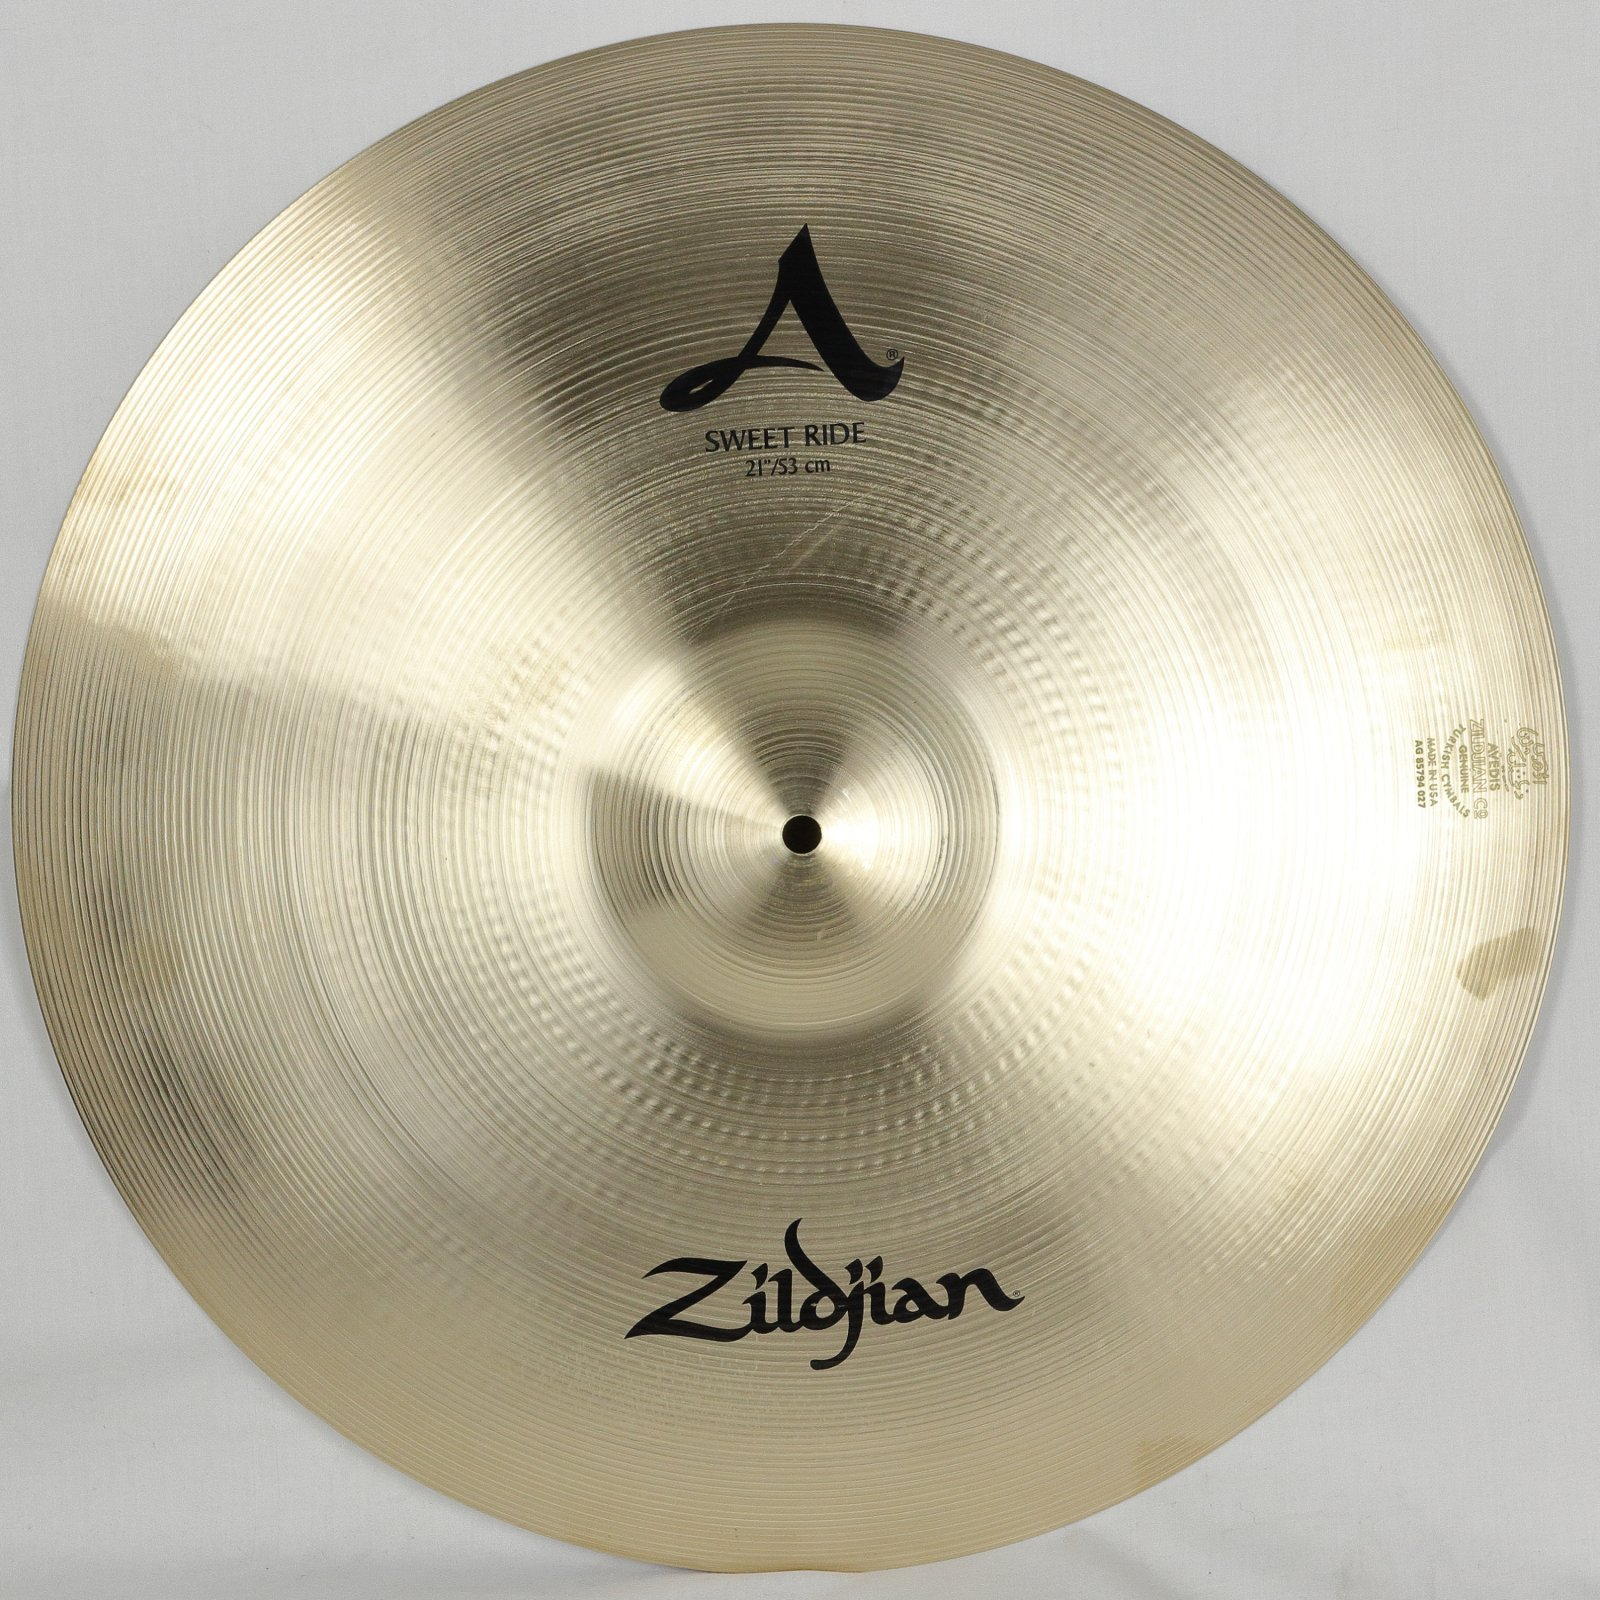 Zildjian A Series Sweet Ride Cymbal 21 (USED)